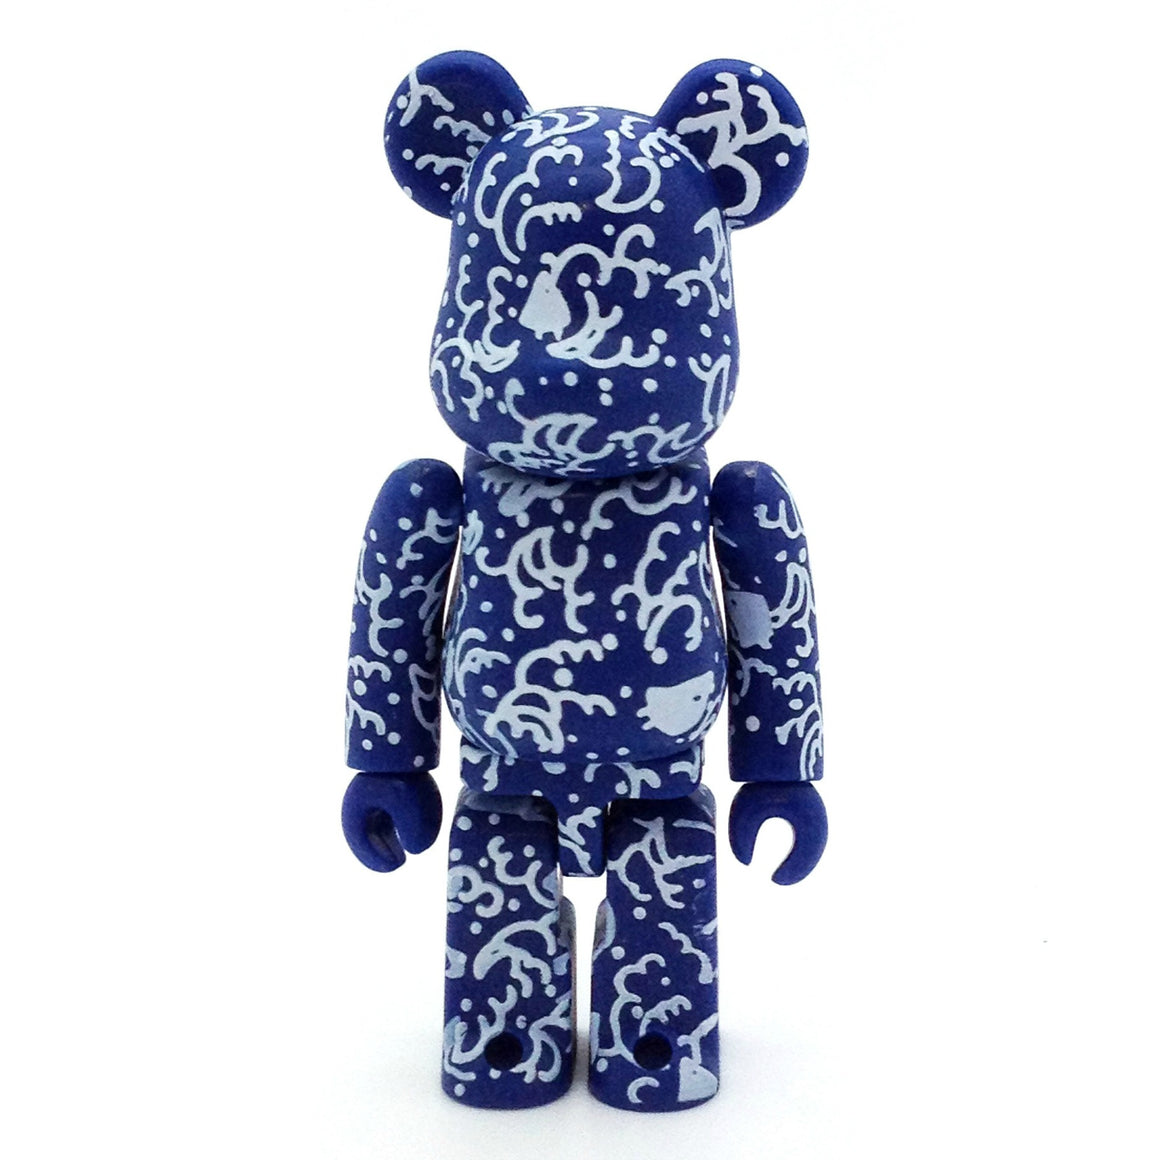 Bearbrick Series 28 - Pattern - Mindzai  - 1